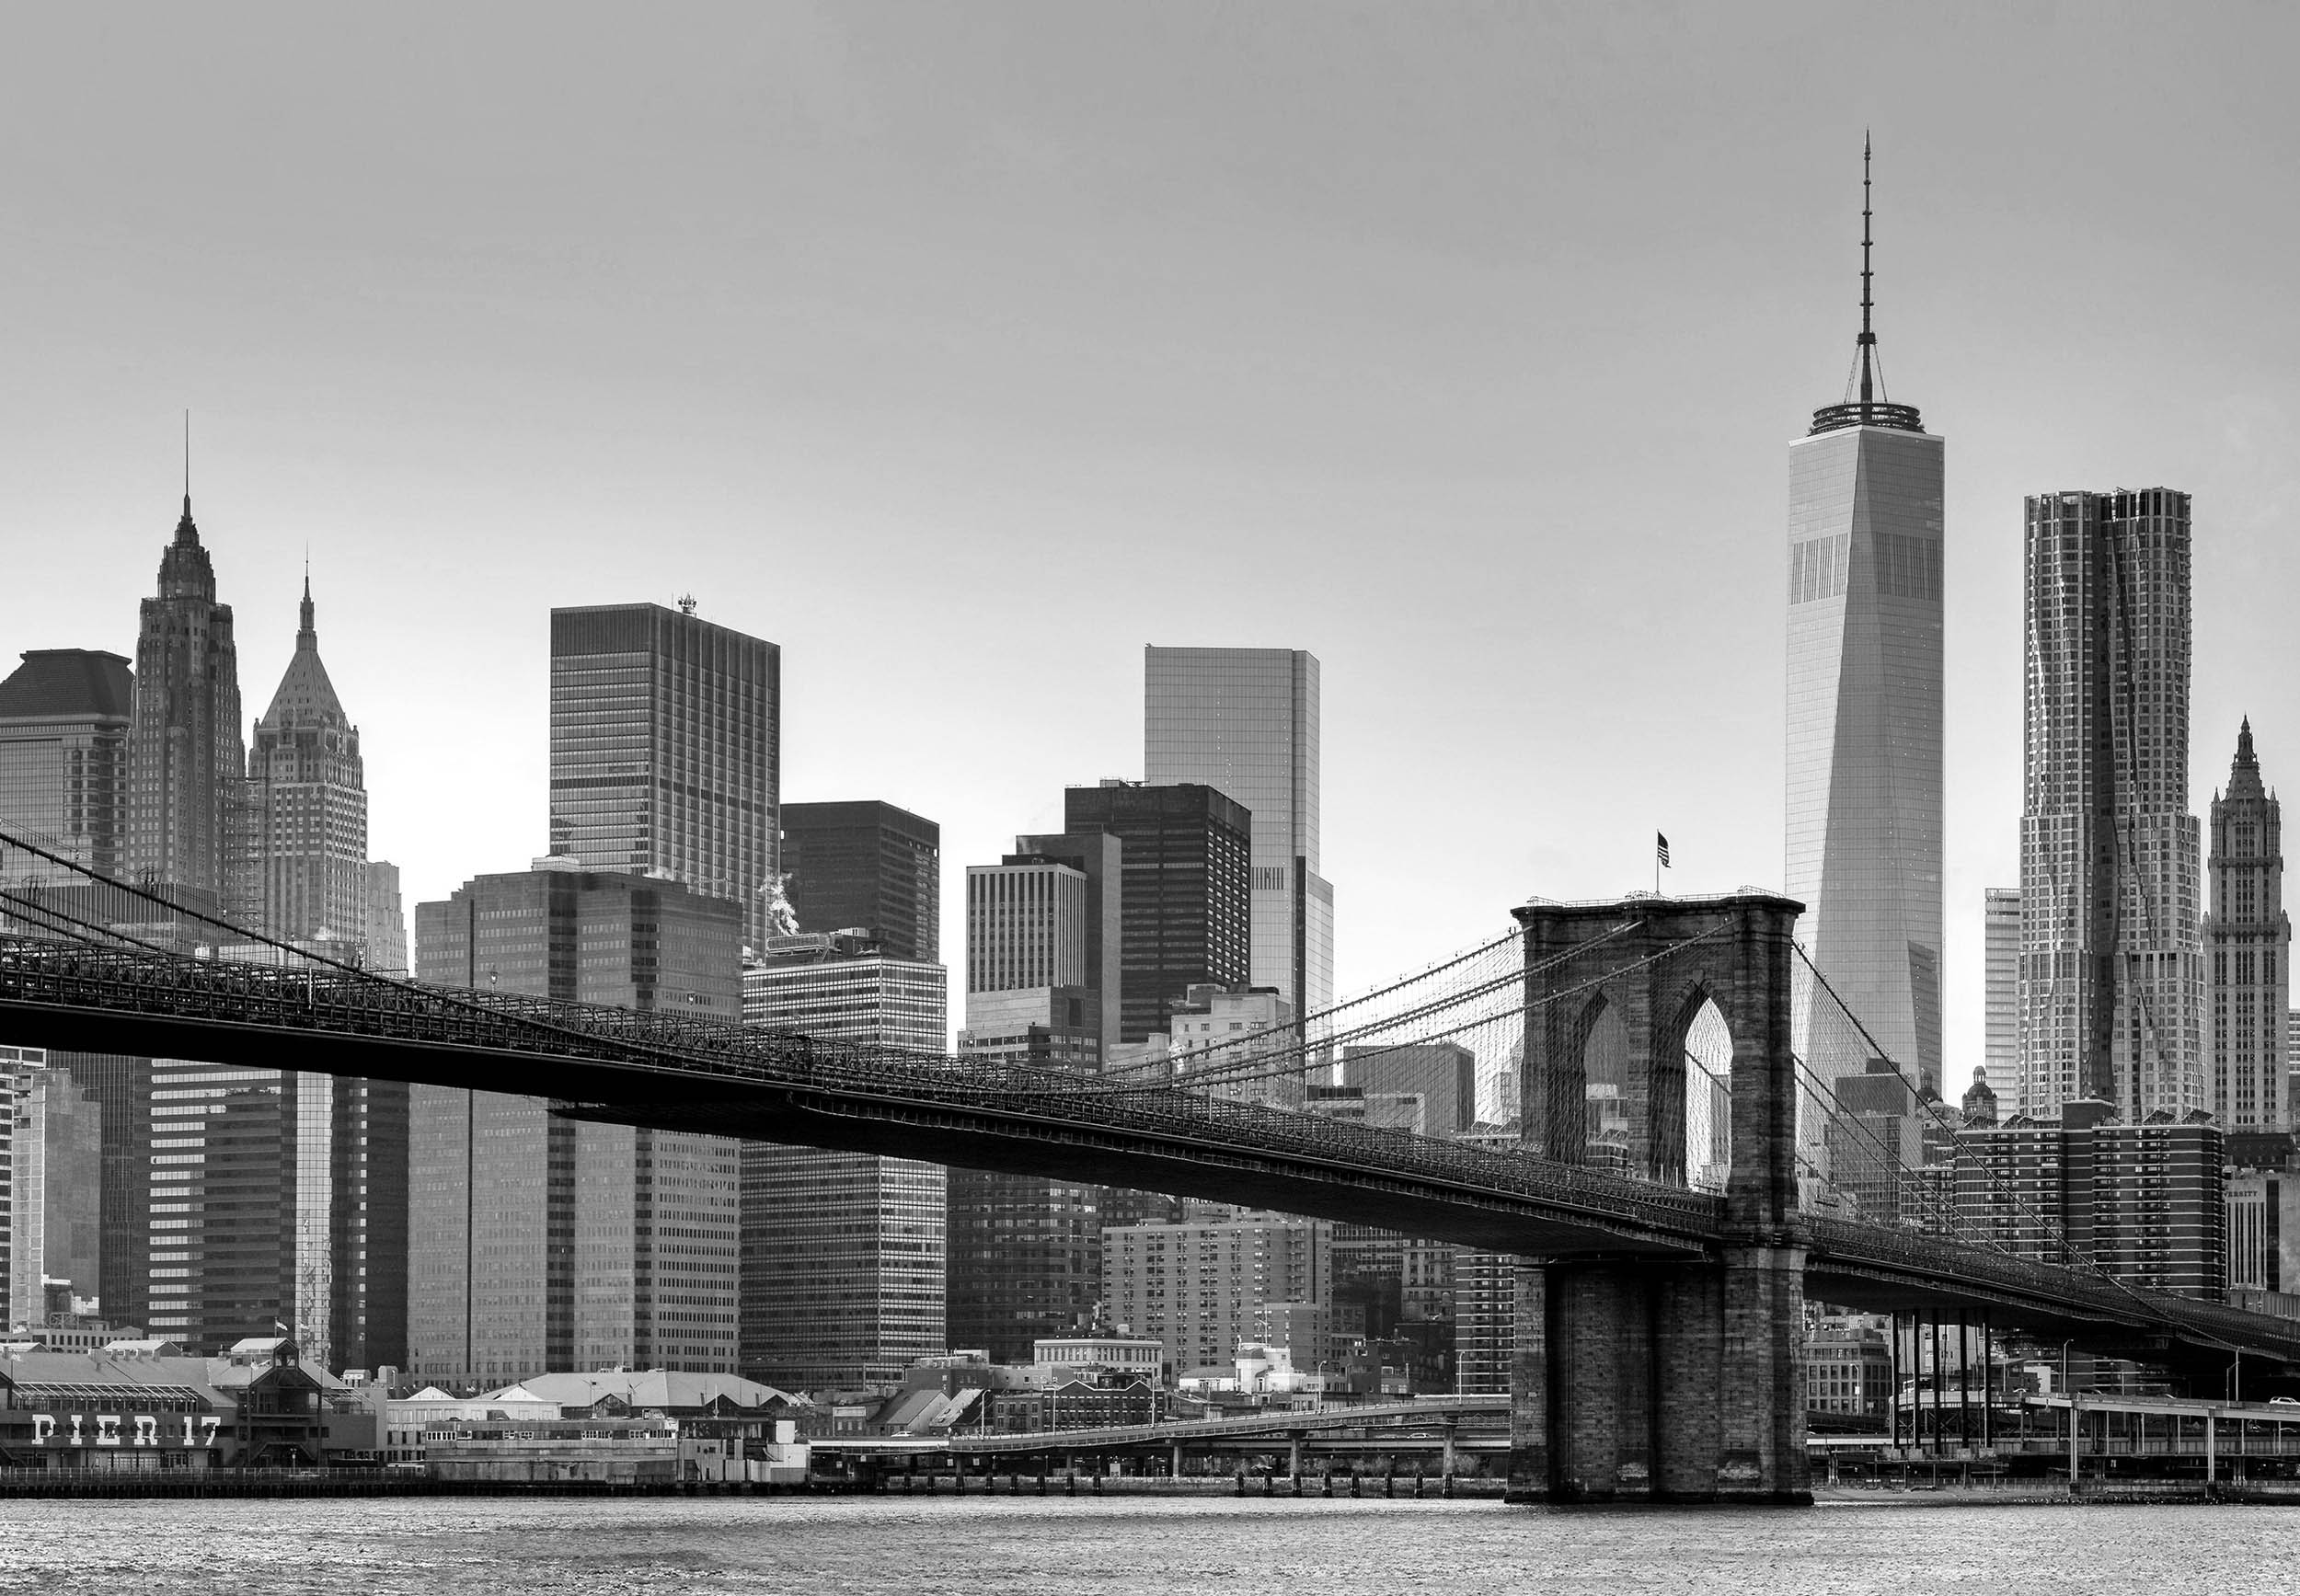 fototapete new york 366 x 254 cm brooklyn bridge skyline 8 tlg schwarz wei ebay. Black Bedroom Furniture Sets. Home Design Ideas